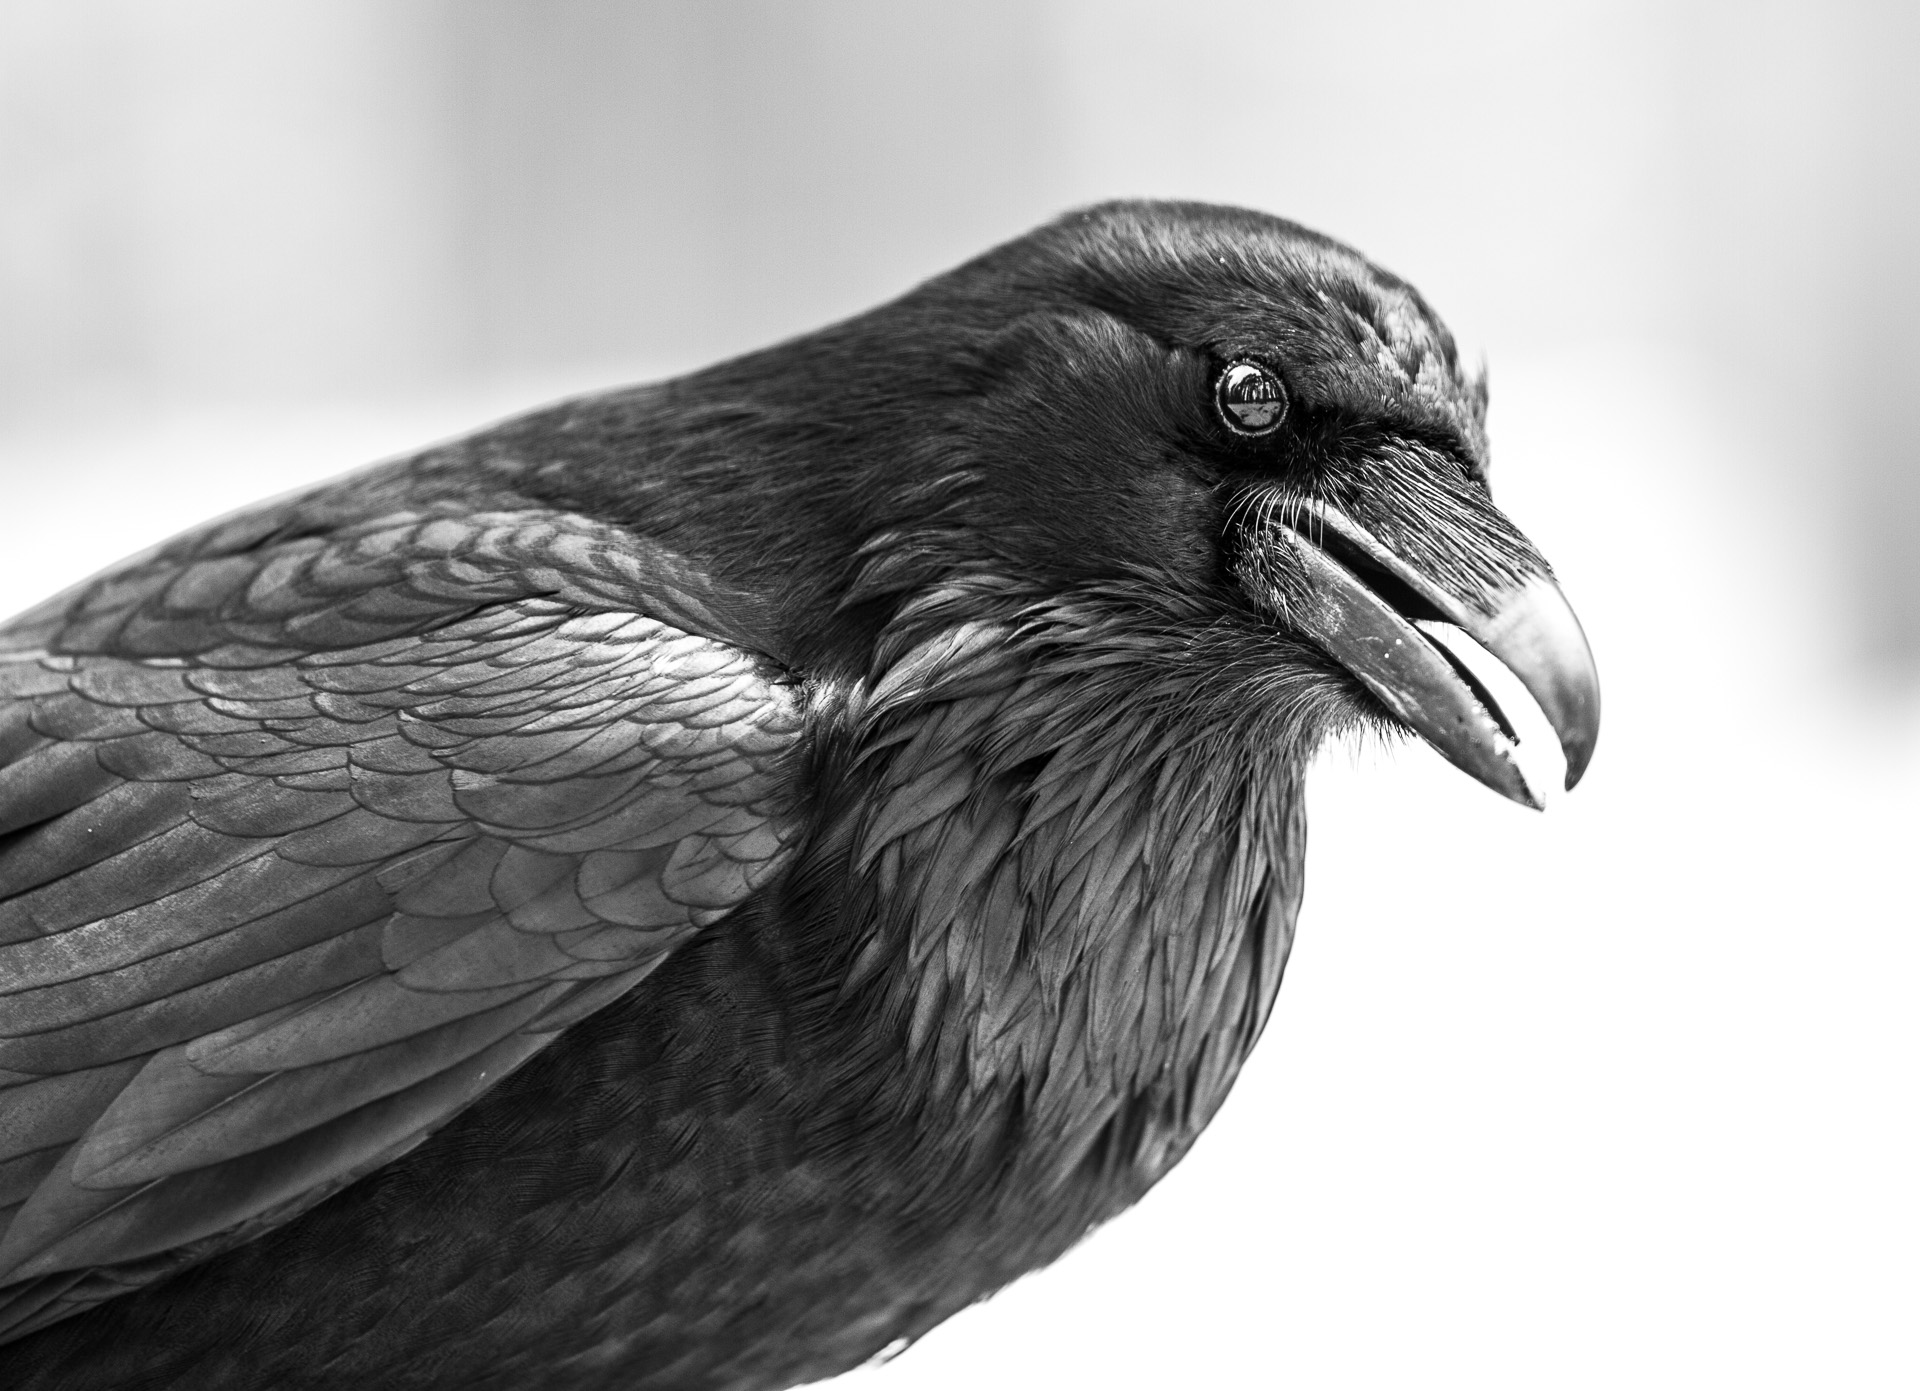 Common Raven black and white Canon 200mm f2 lens Yellowstone National Park WY Sparky Stensaas-0368